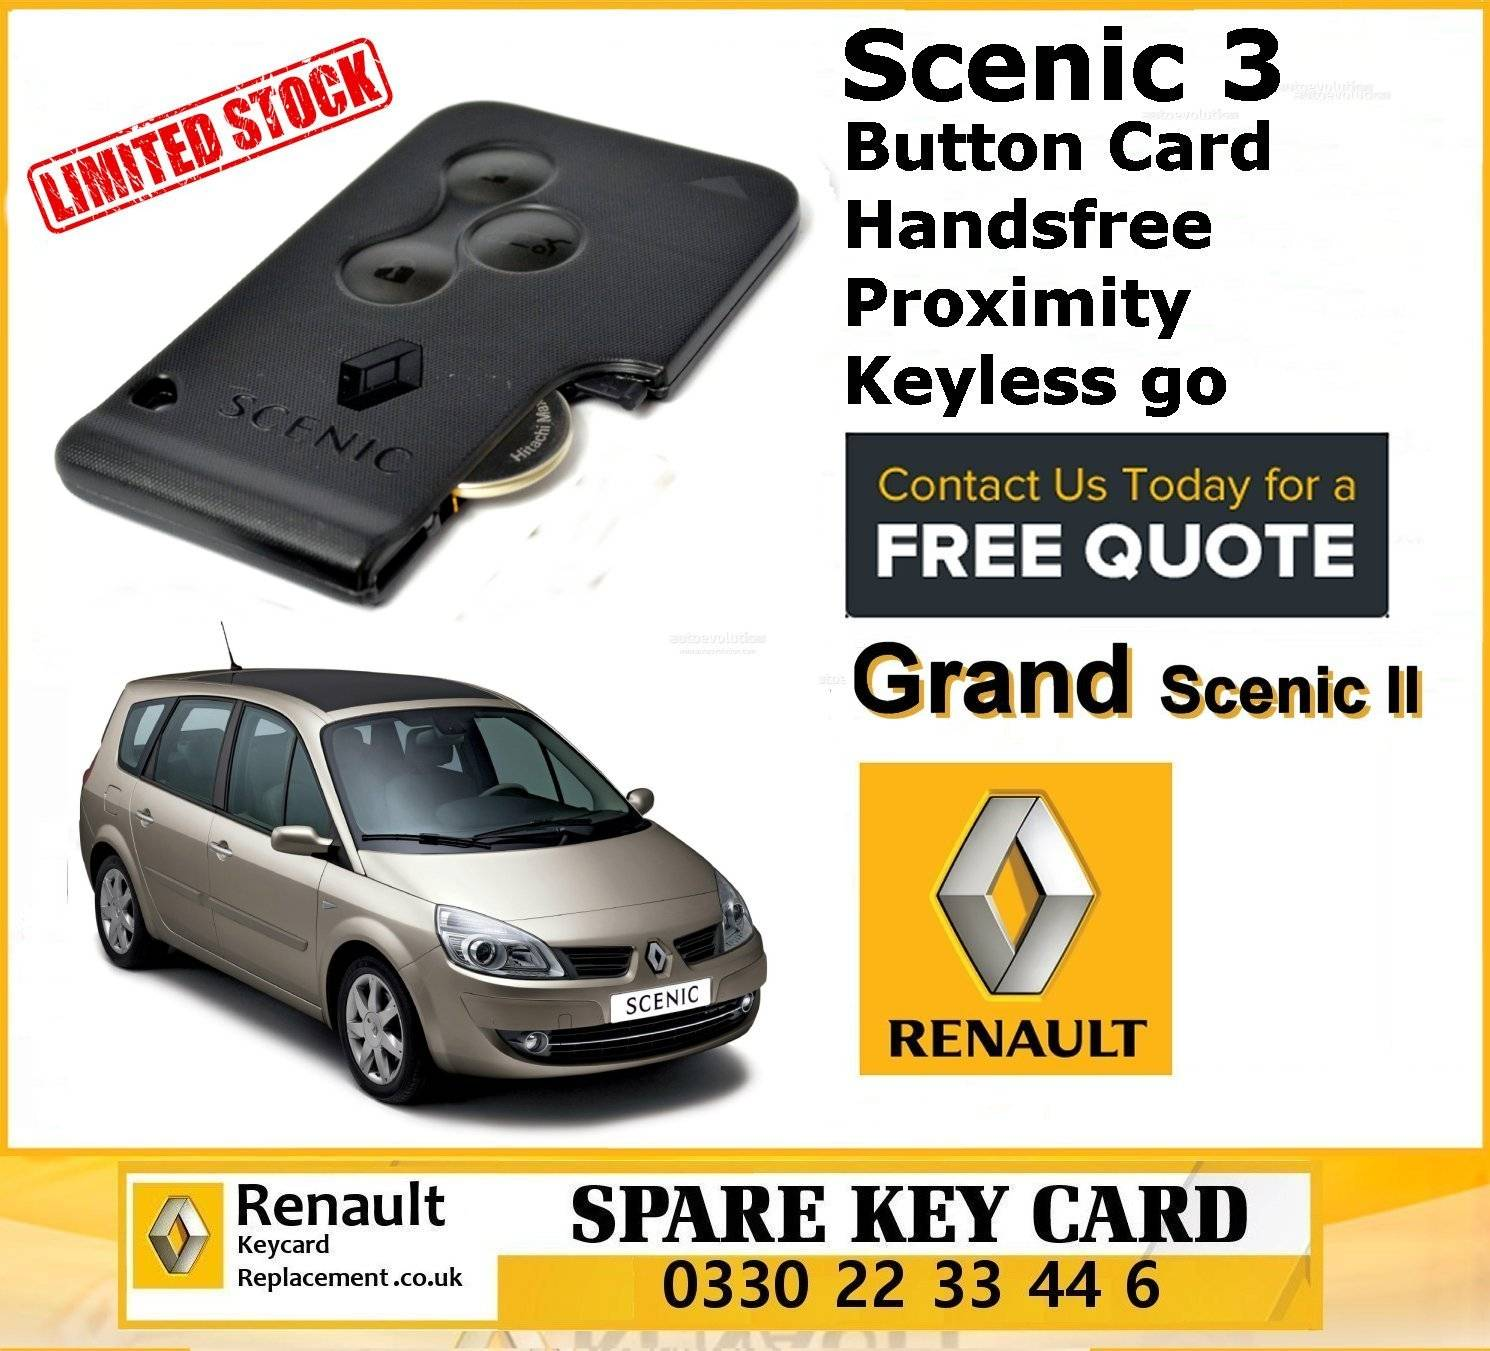 renault key car key replacement renault key fob call 0330. Black Bedroom Furniture Sets. Home Design Ideas